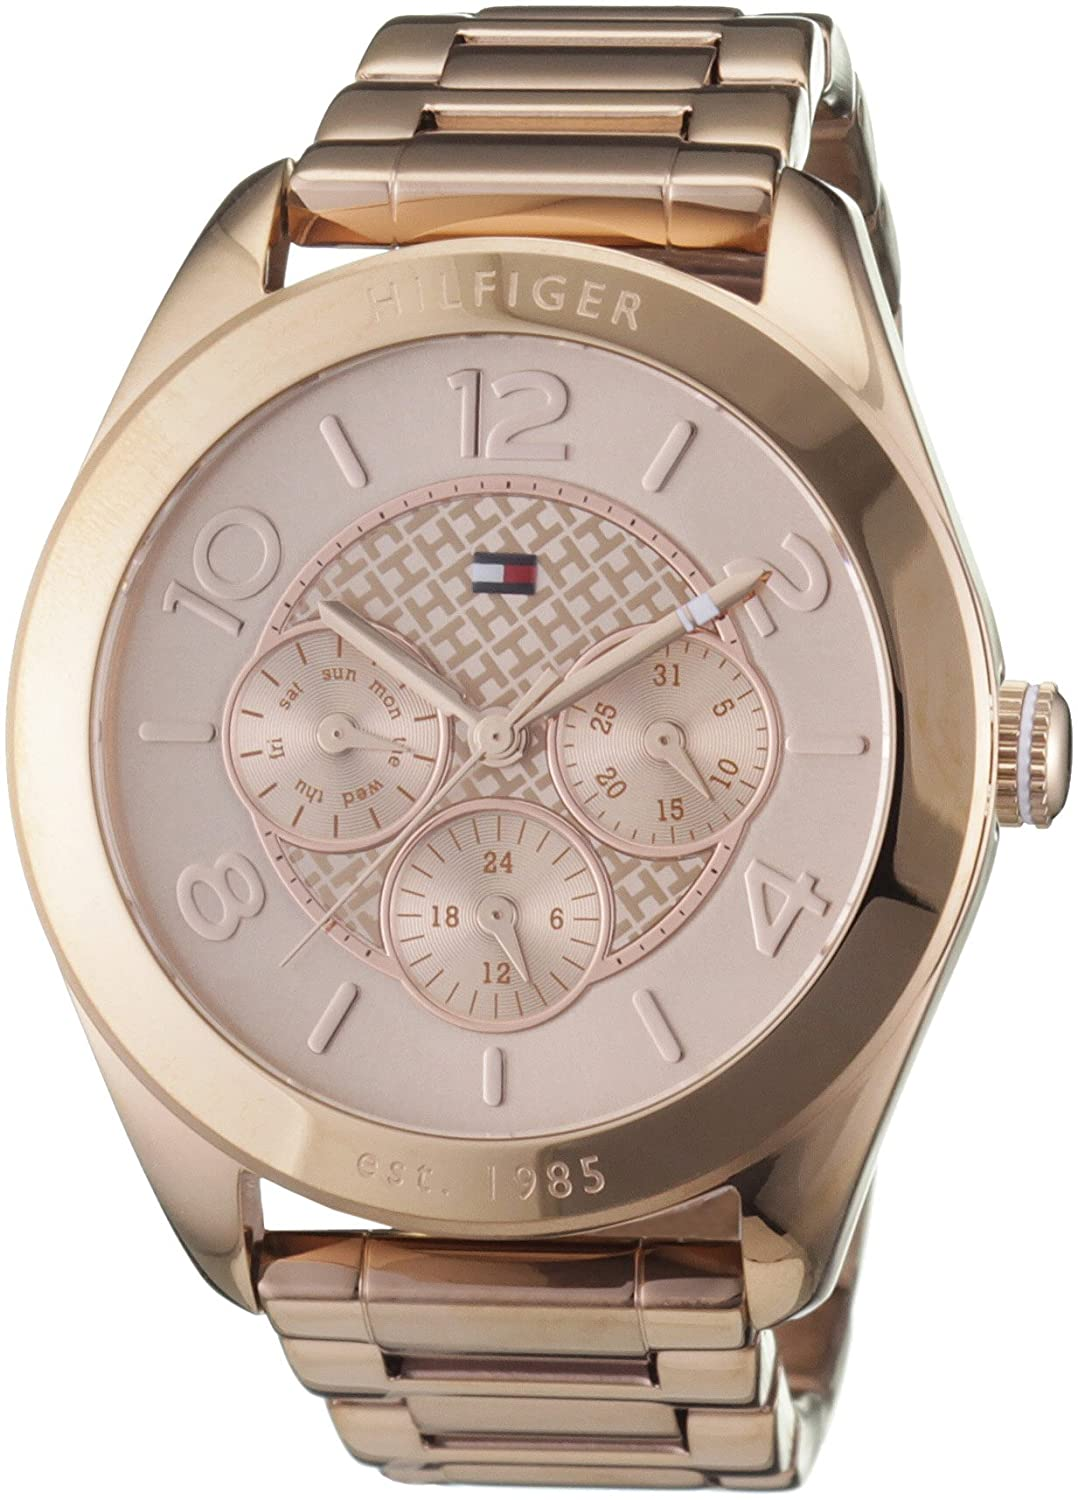 Amazon.com: Tommy Hilfiger Womens 1781204 Rose Gold Stainless-Steel Analog Quartz Watch: Tommy Hilfiger: Watches